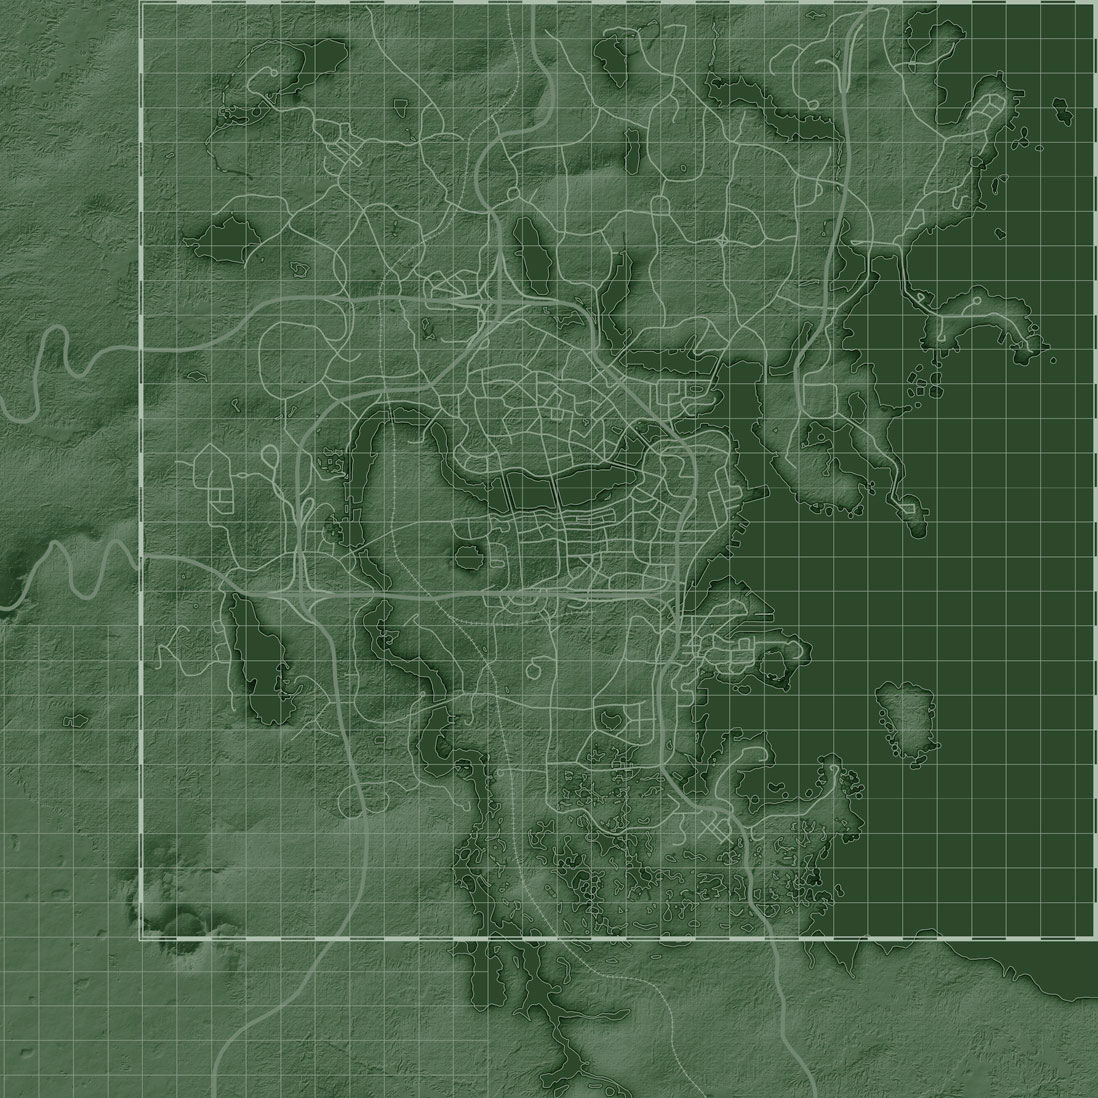 Fallout 4 Interactive Map on